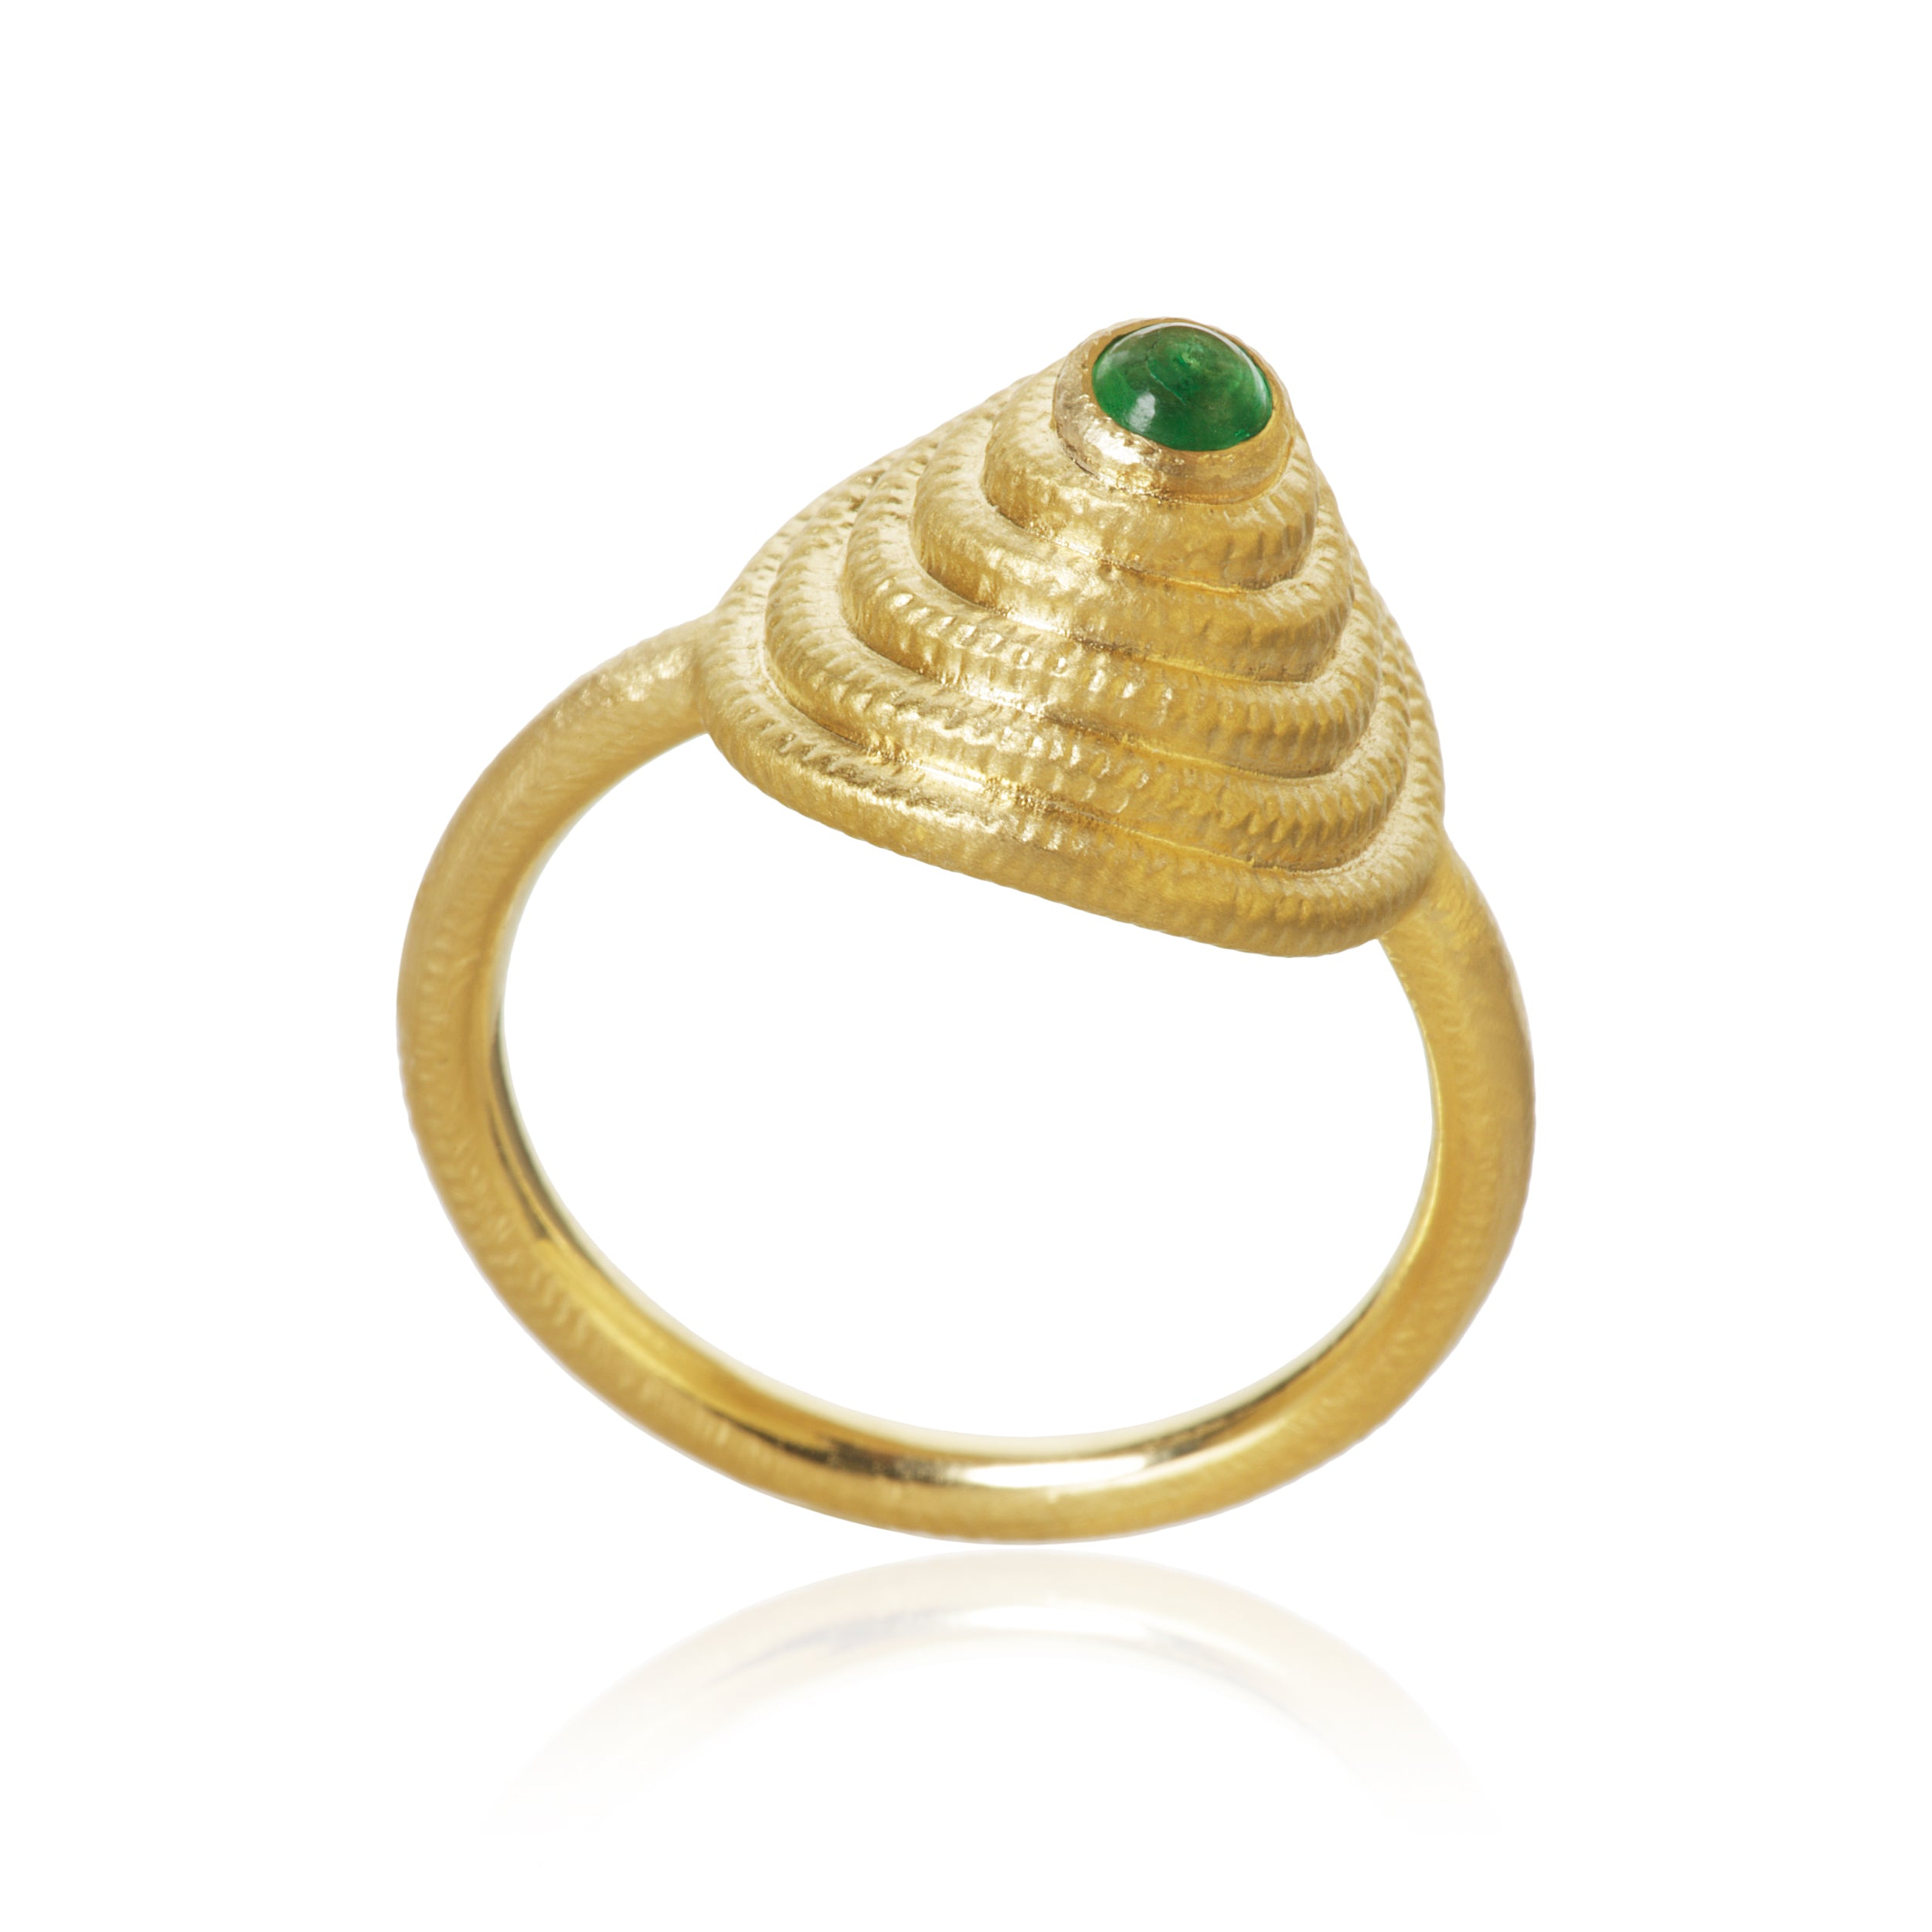 Thera Twist ring with green emerald.